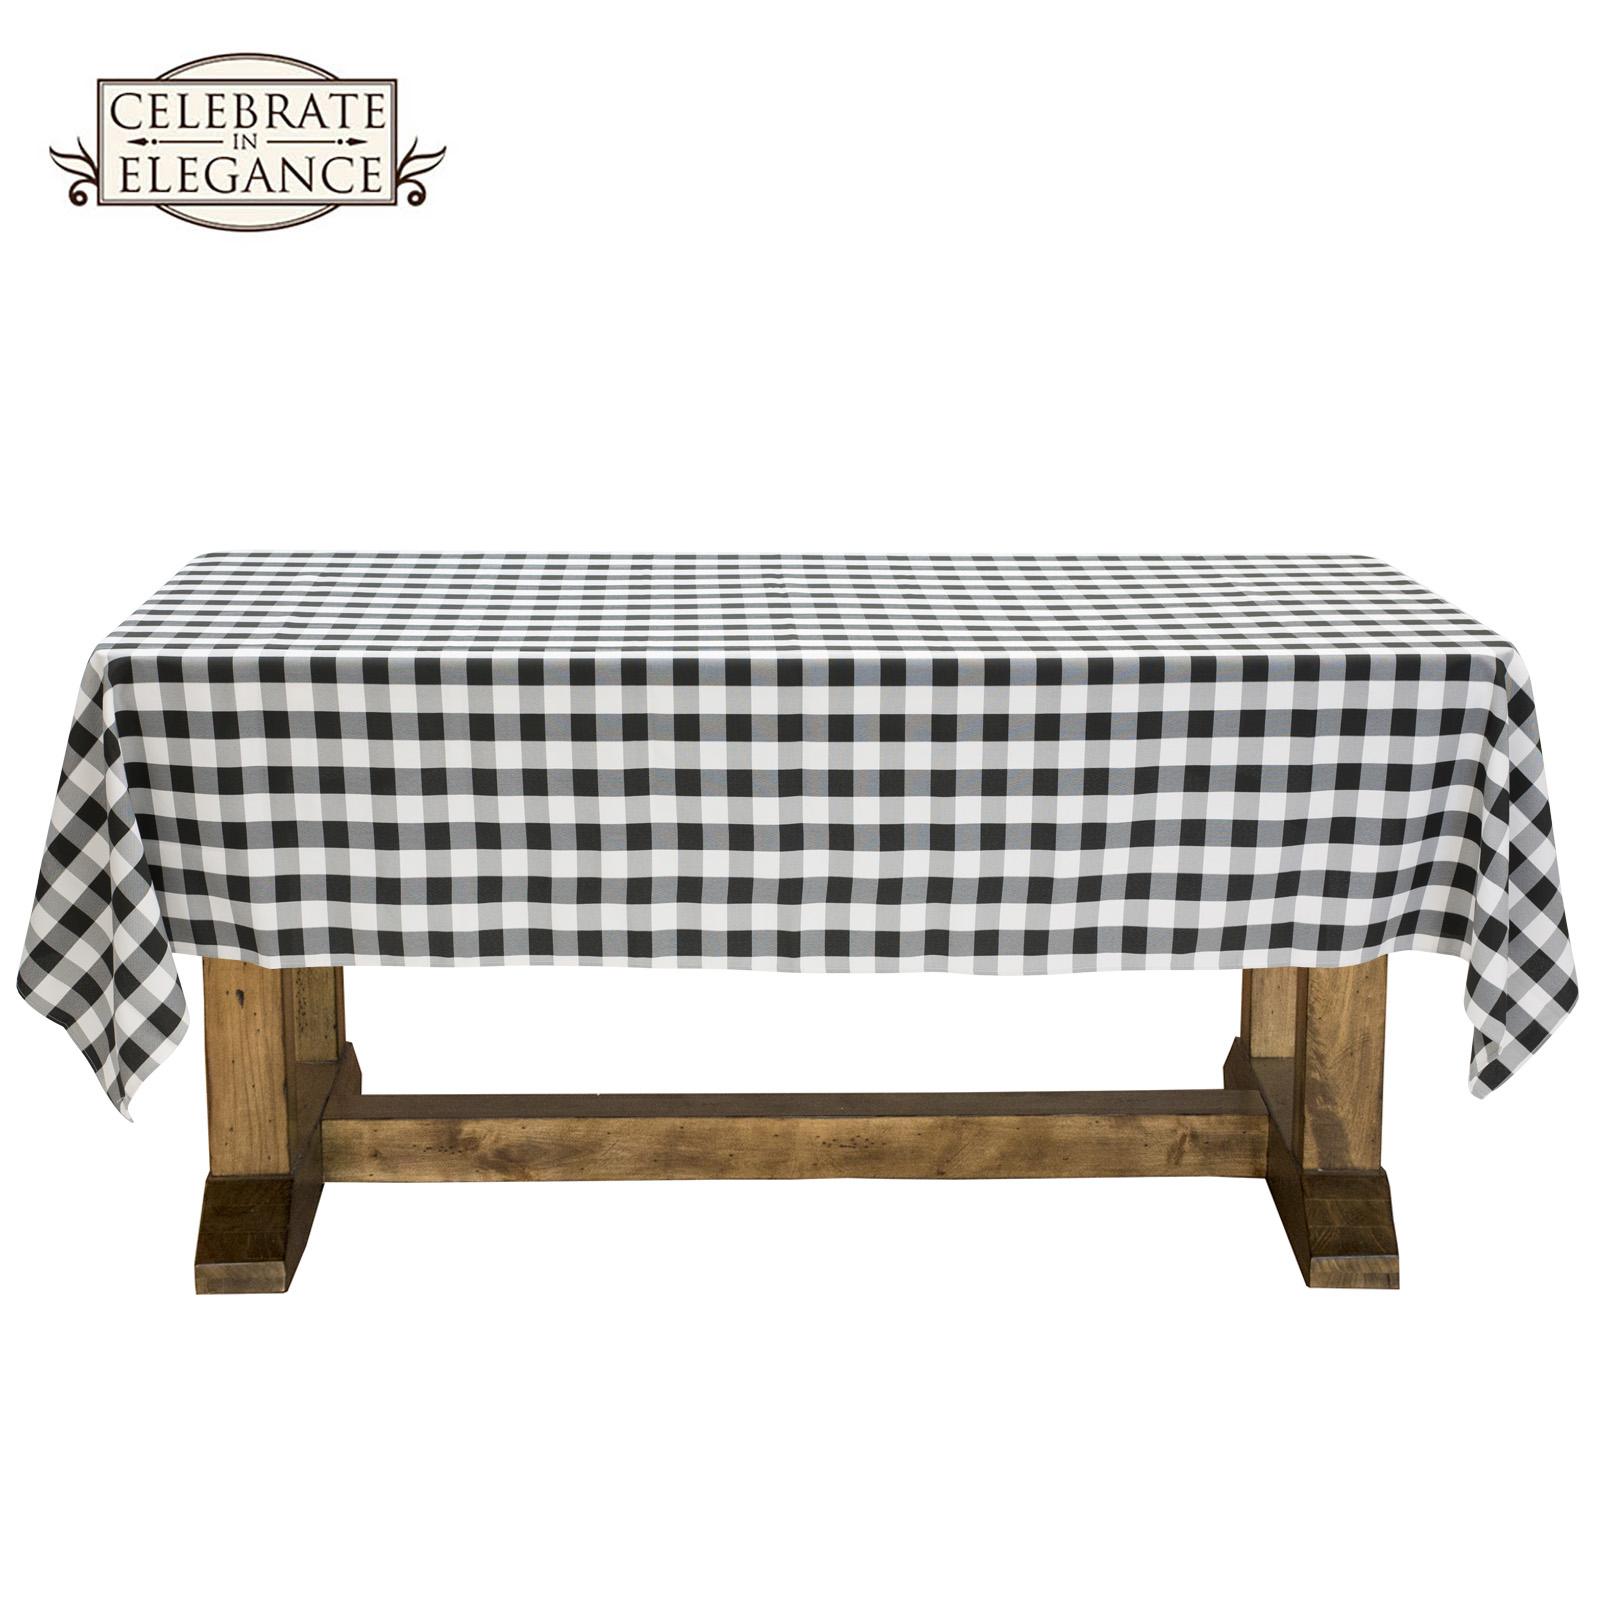 Delicieux Black And White Checkered Tablecloth Polyester Picnic Table